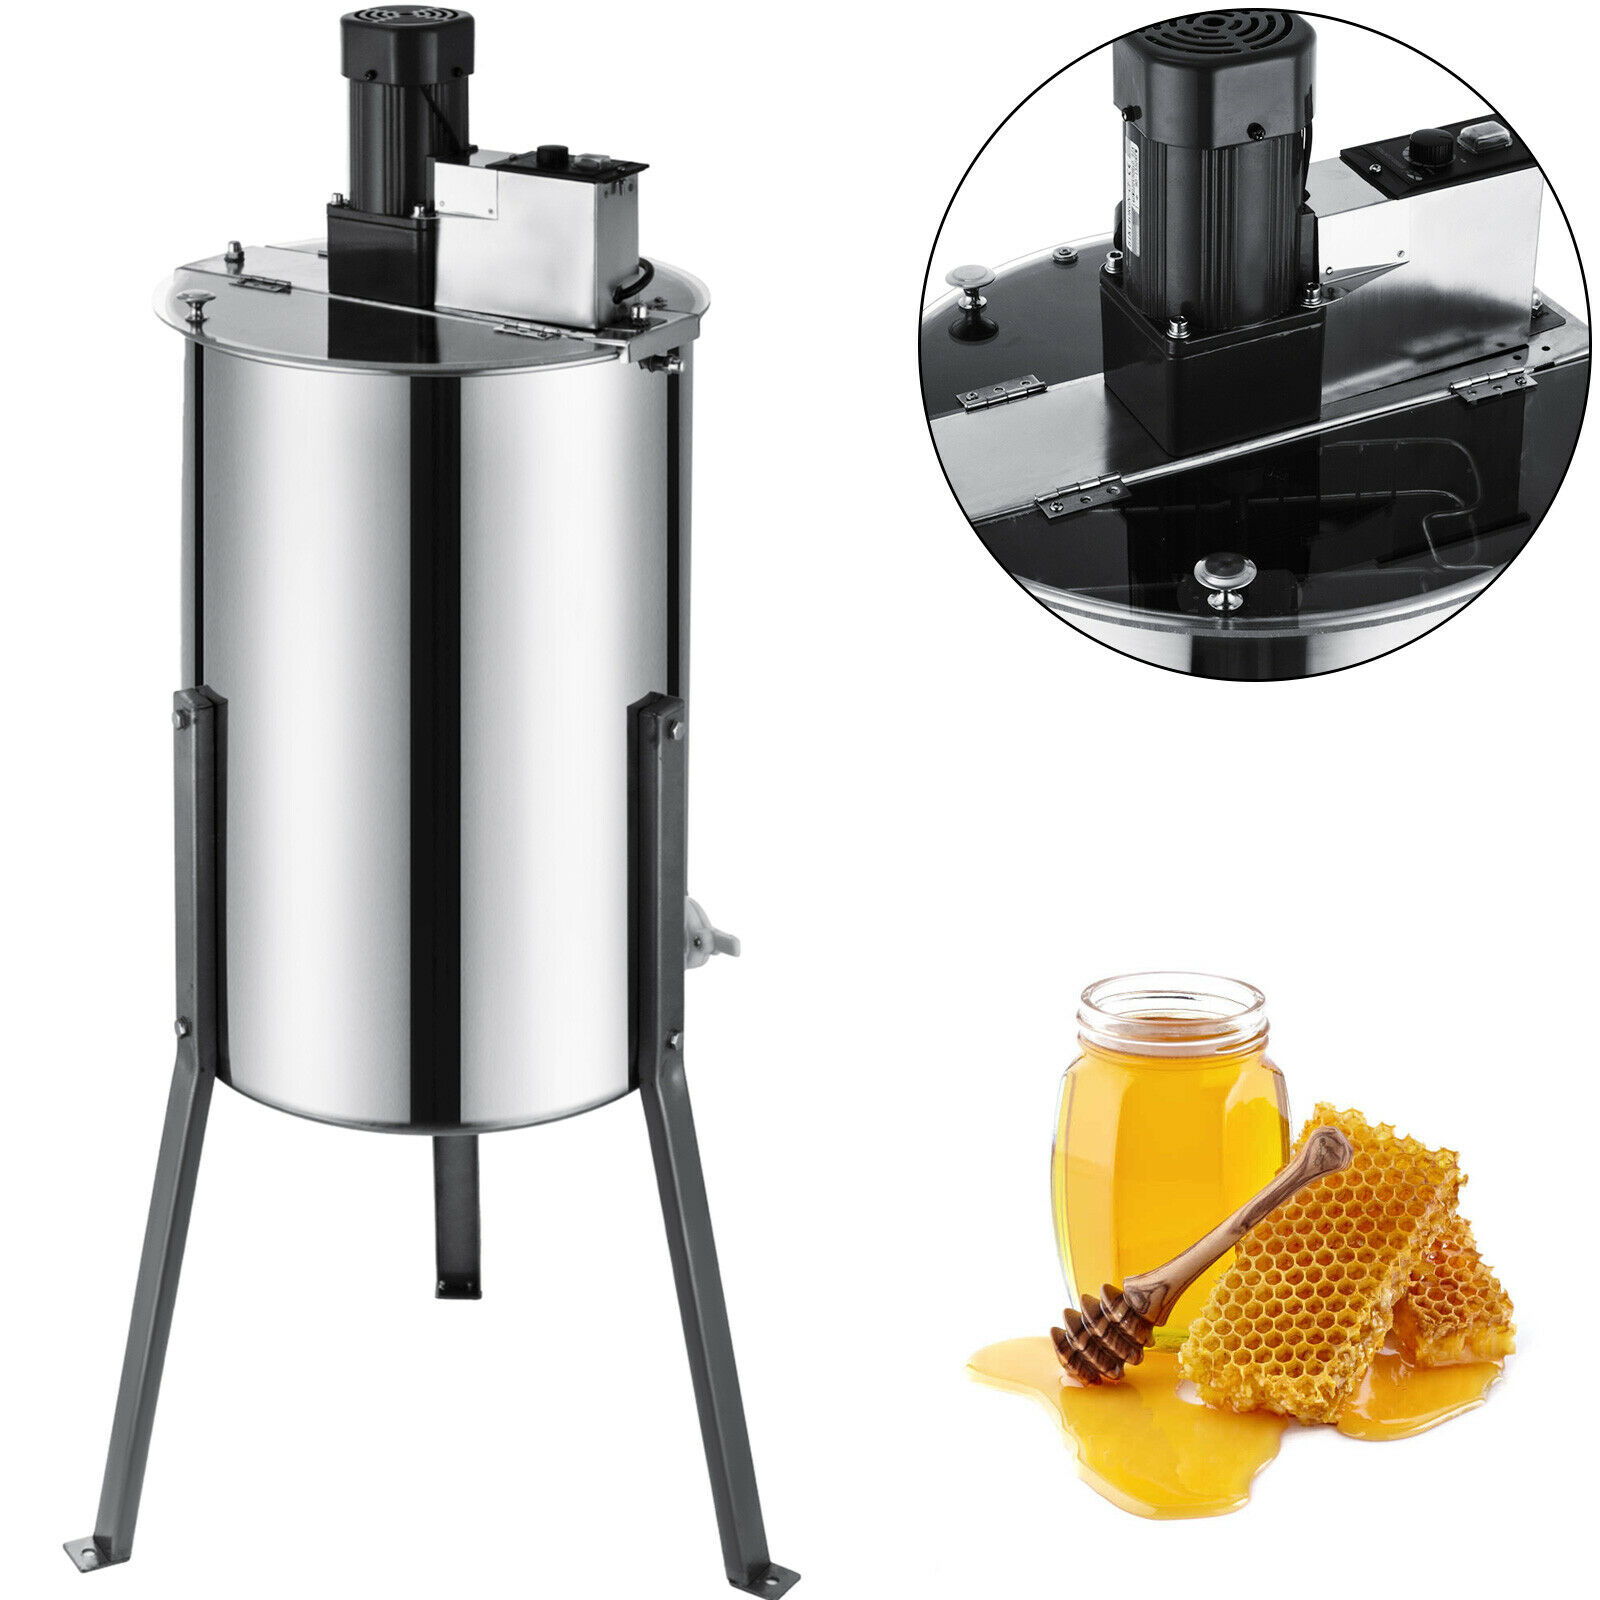 Free Shipping Electric Honey Extractor 2 Frames Honeycomb Honey Stainless Steel Centrifuge